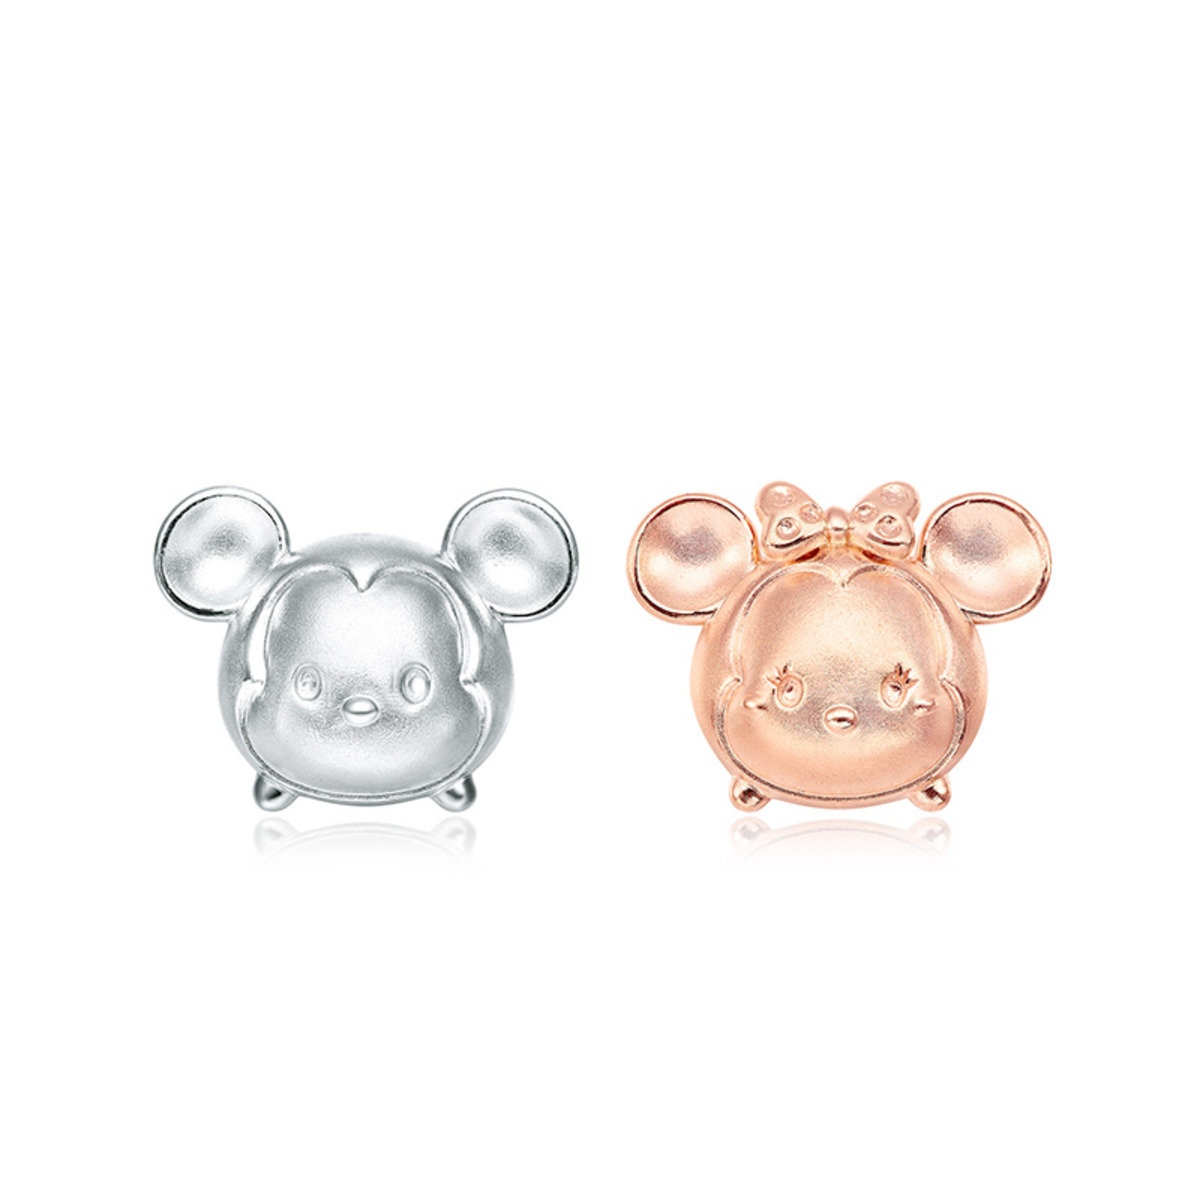 daa4e4ddc Disney Tsum Tsum Collection: Mickey Mouse and Minnie Mouse 18K/750 White,  Rose